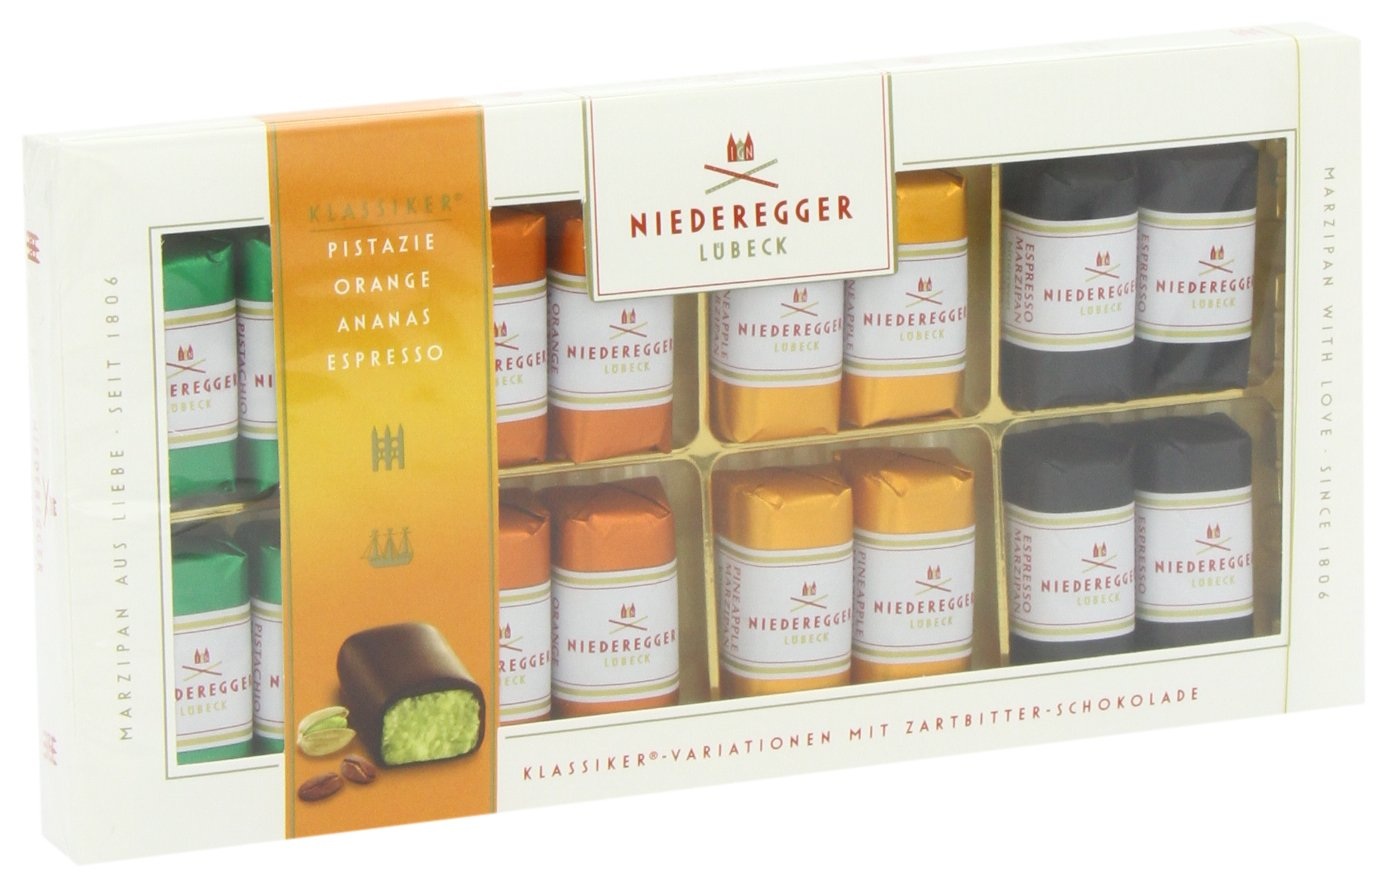 Niederegger Classic Marzipan Variations - 200 g/7.0 oz by Niederegger (Image #6)